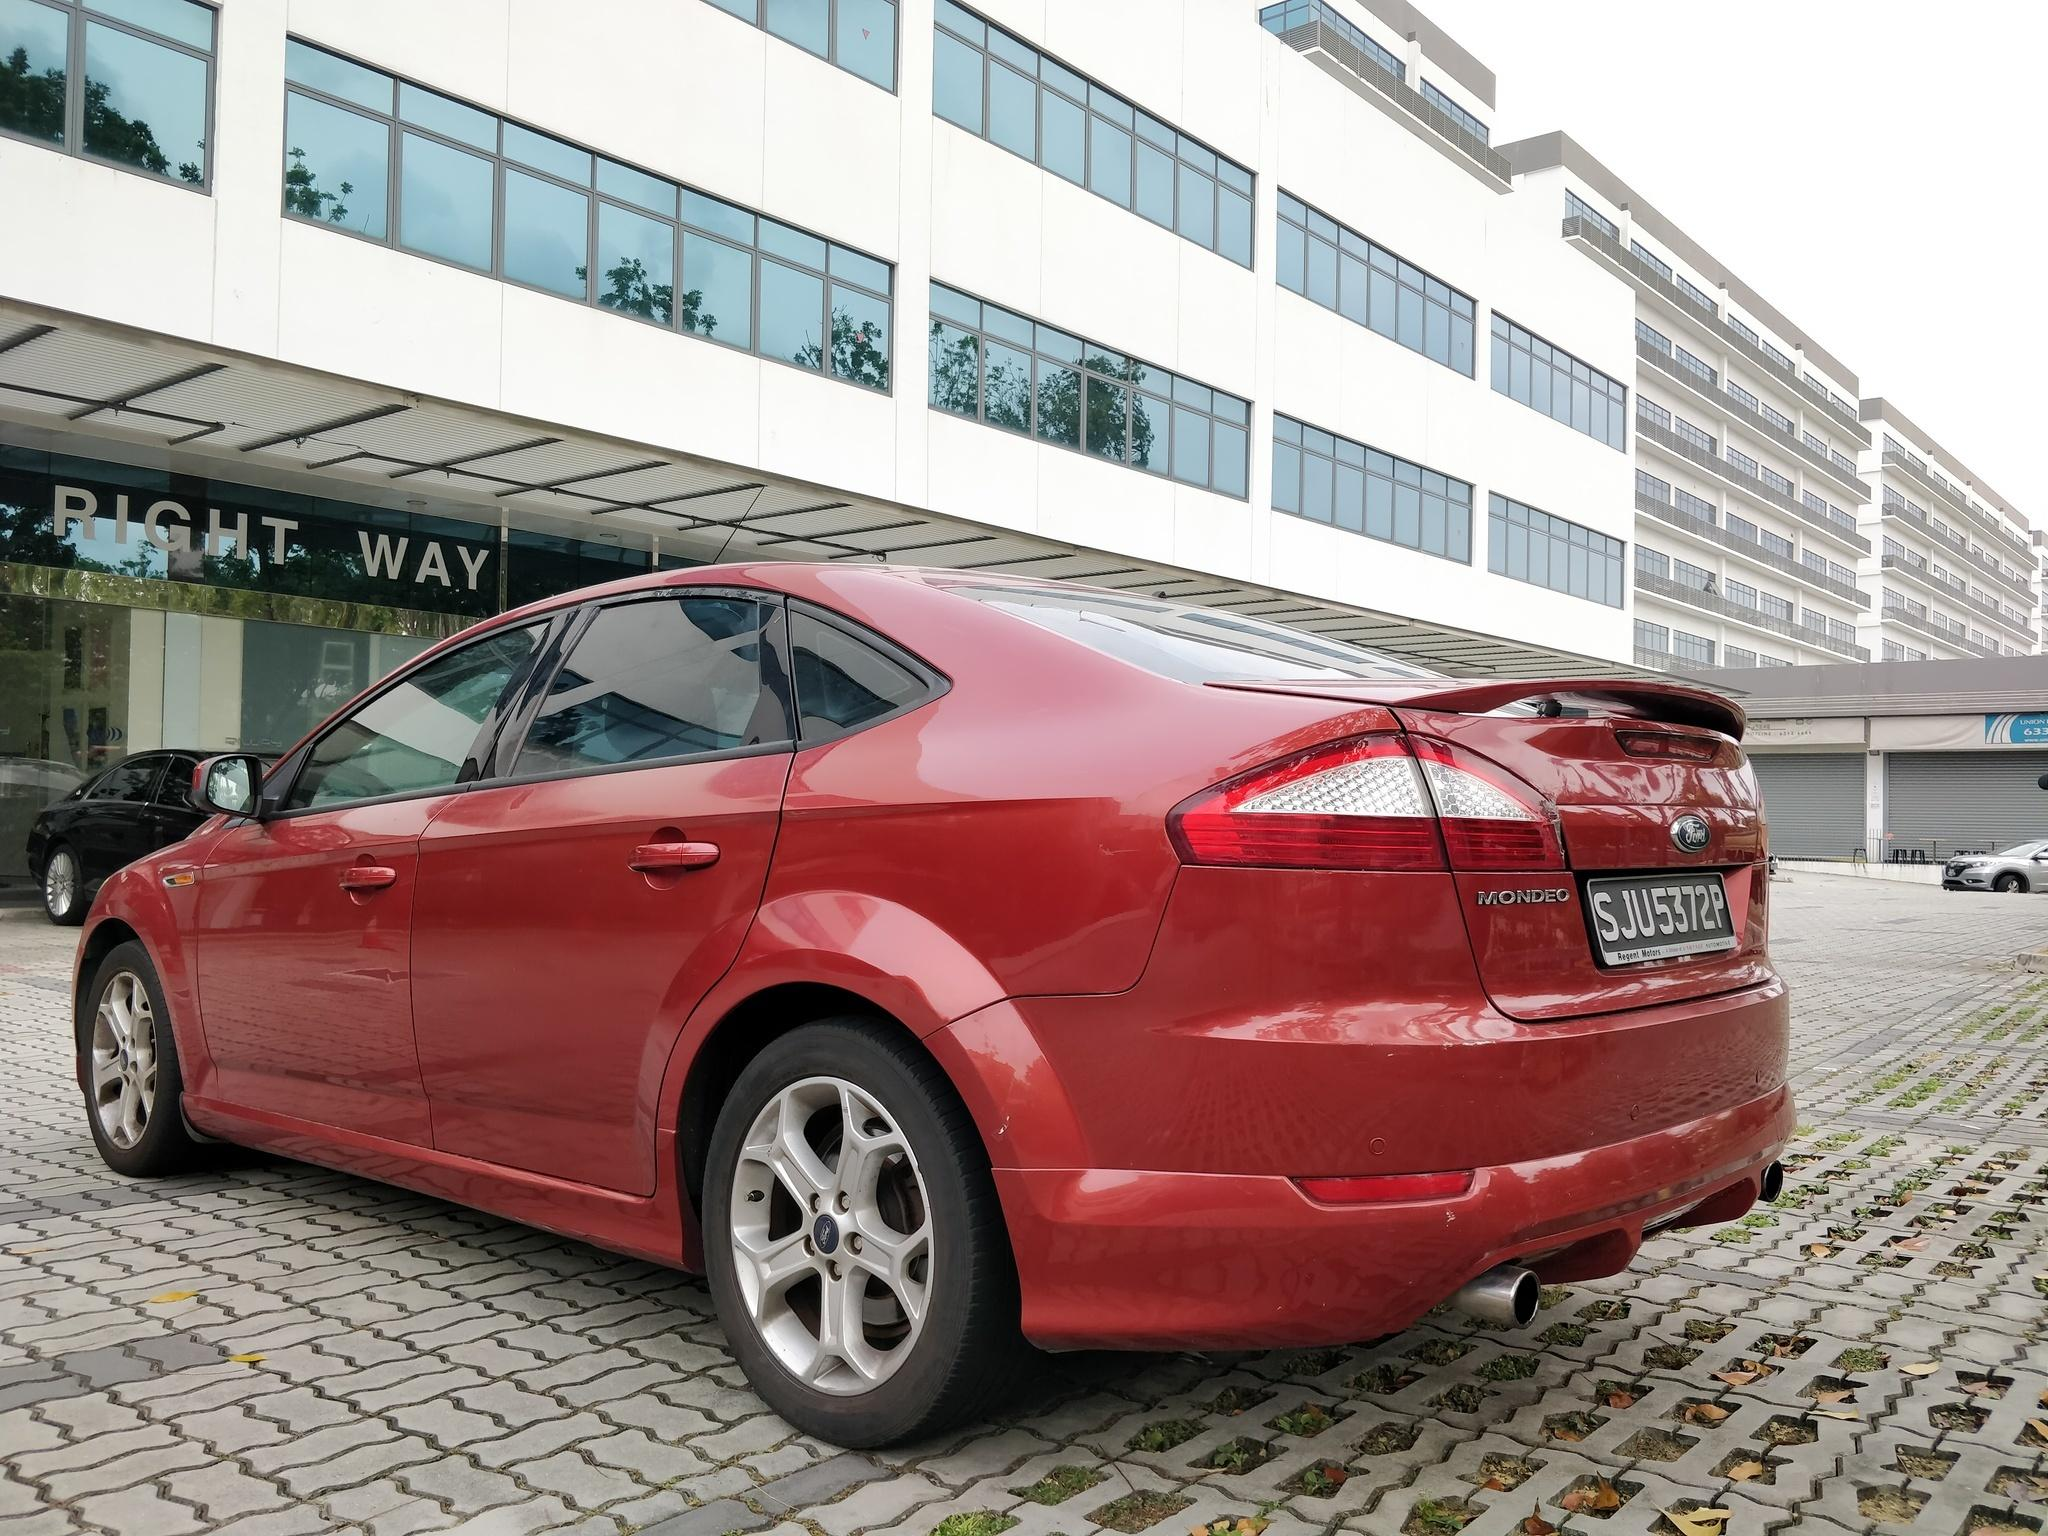 Ford Mondeo 2.3A - Cheapest rental in town, full support!